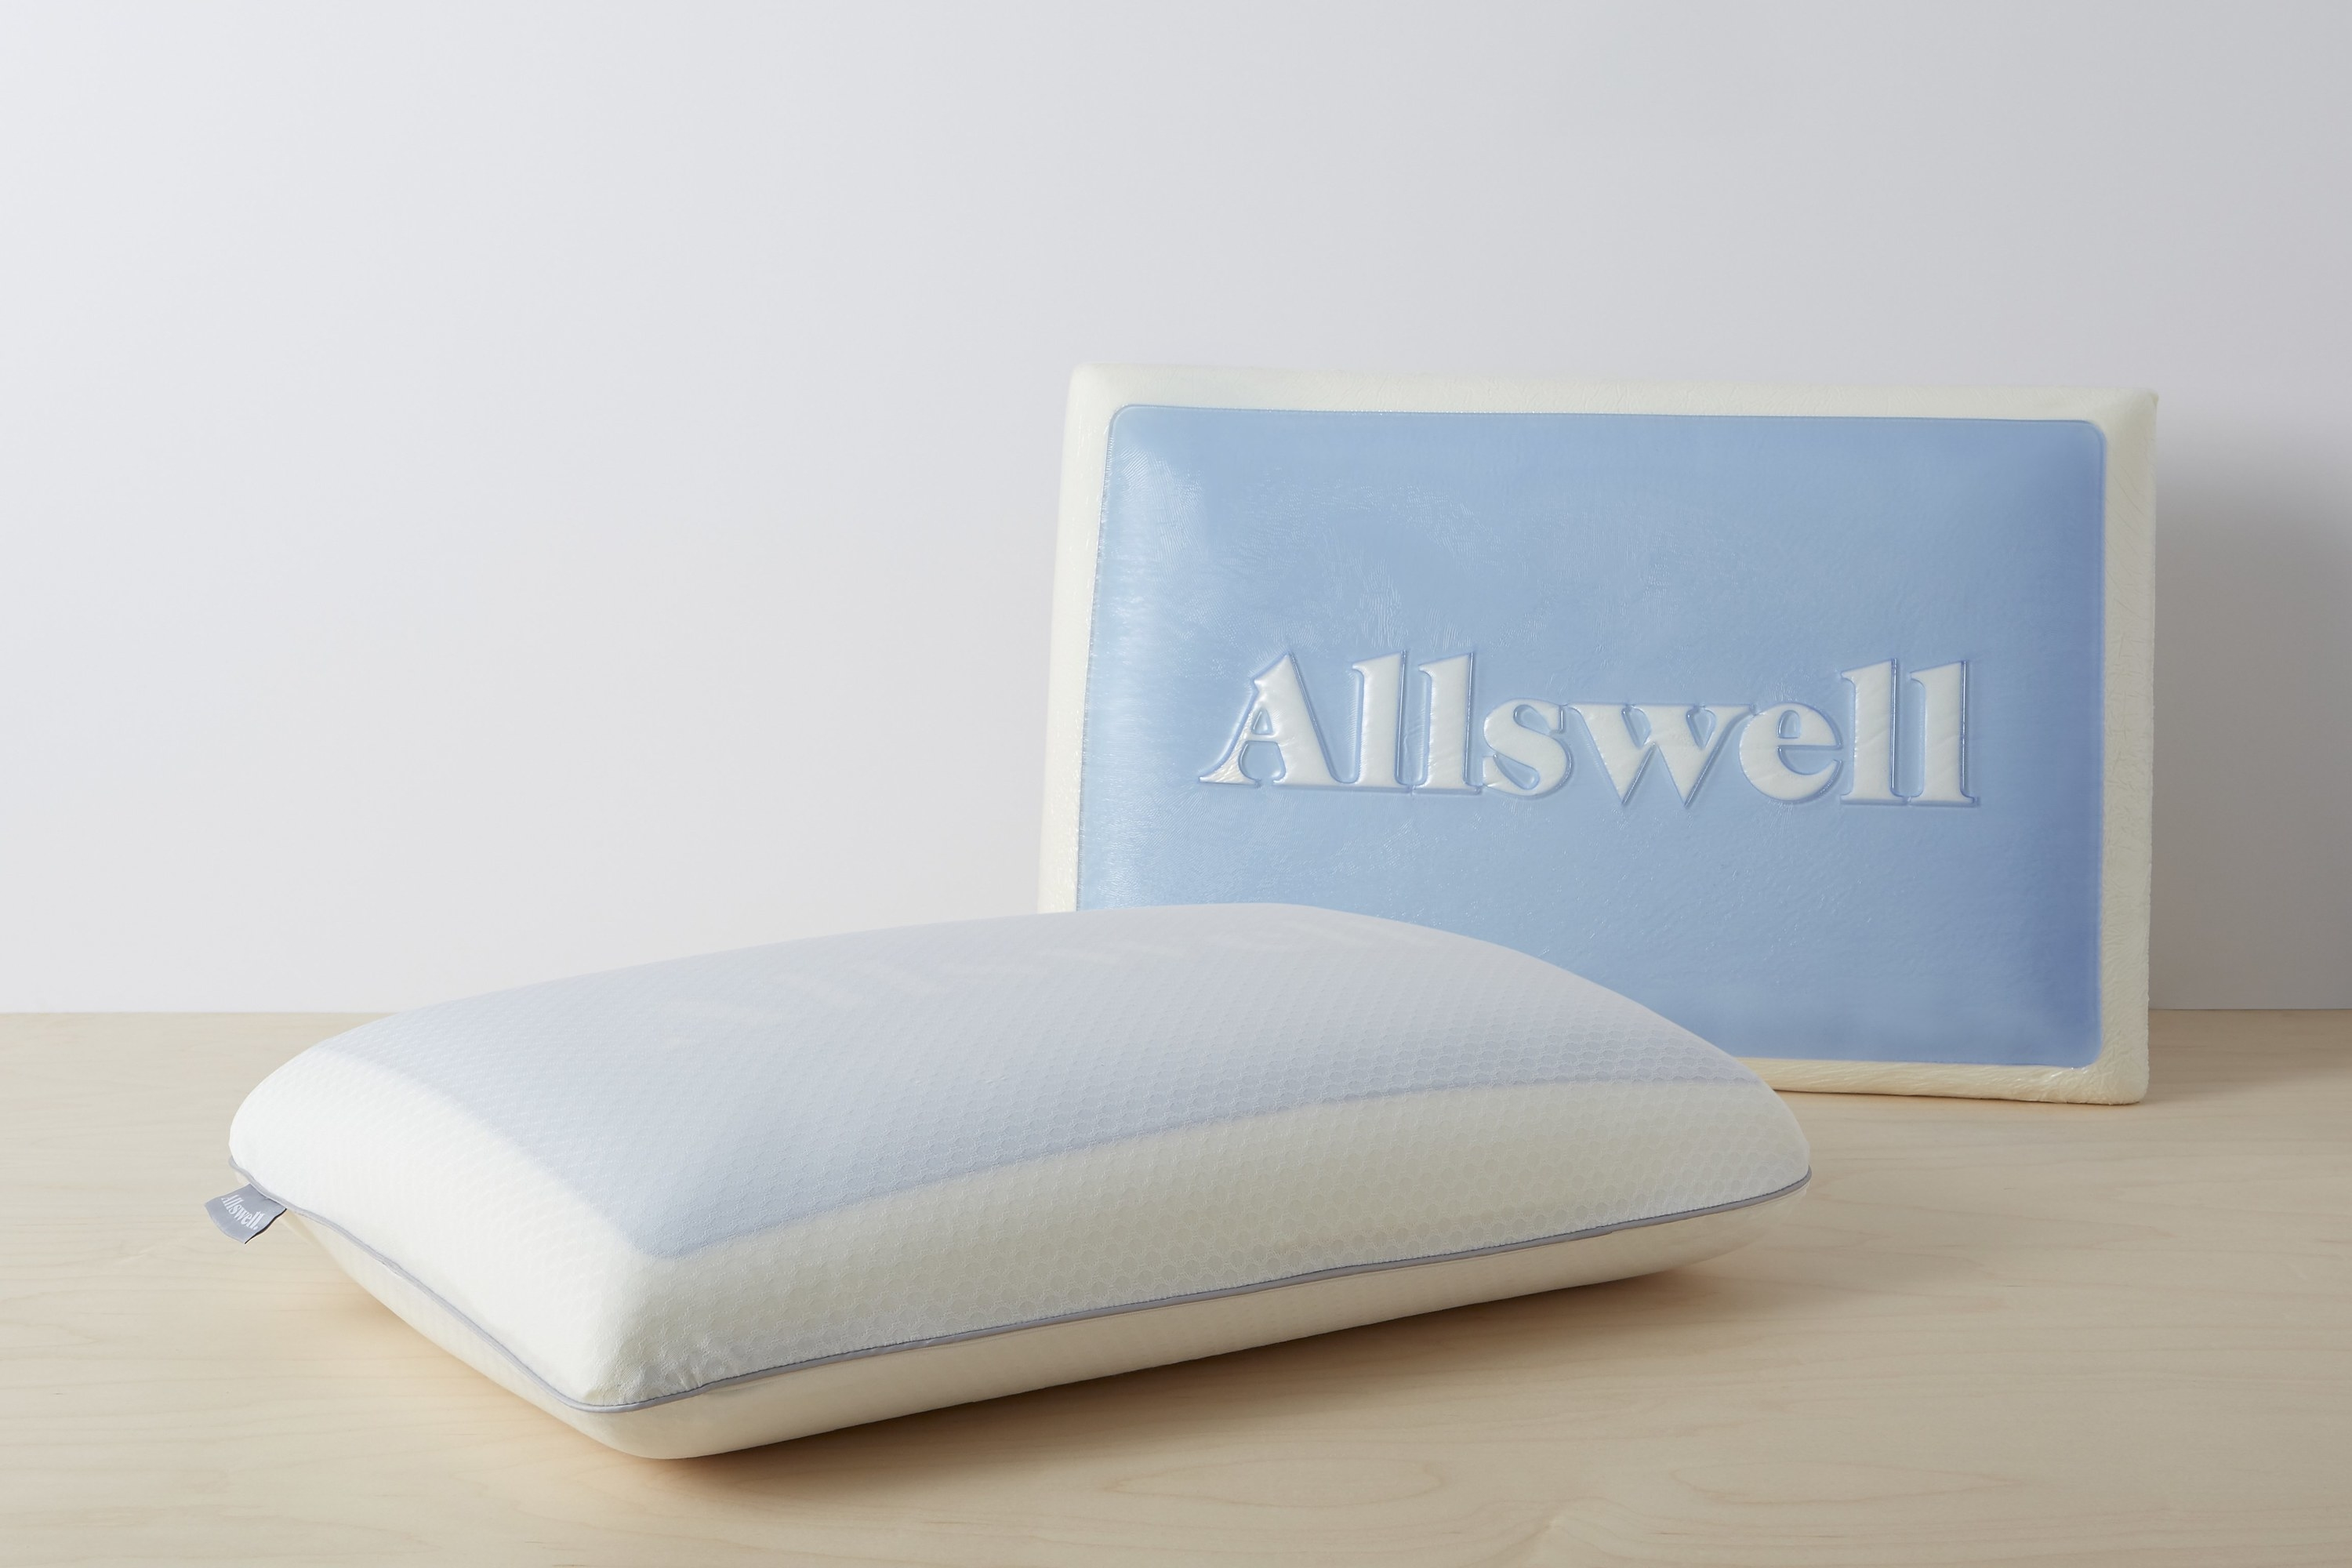 The memory foam pillow next to its pillow cover